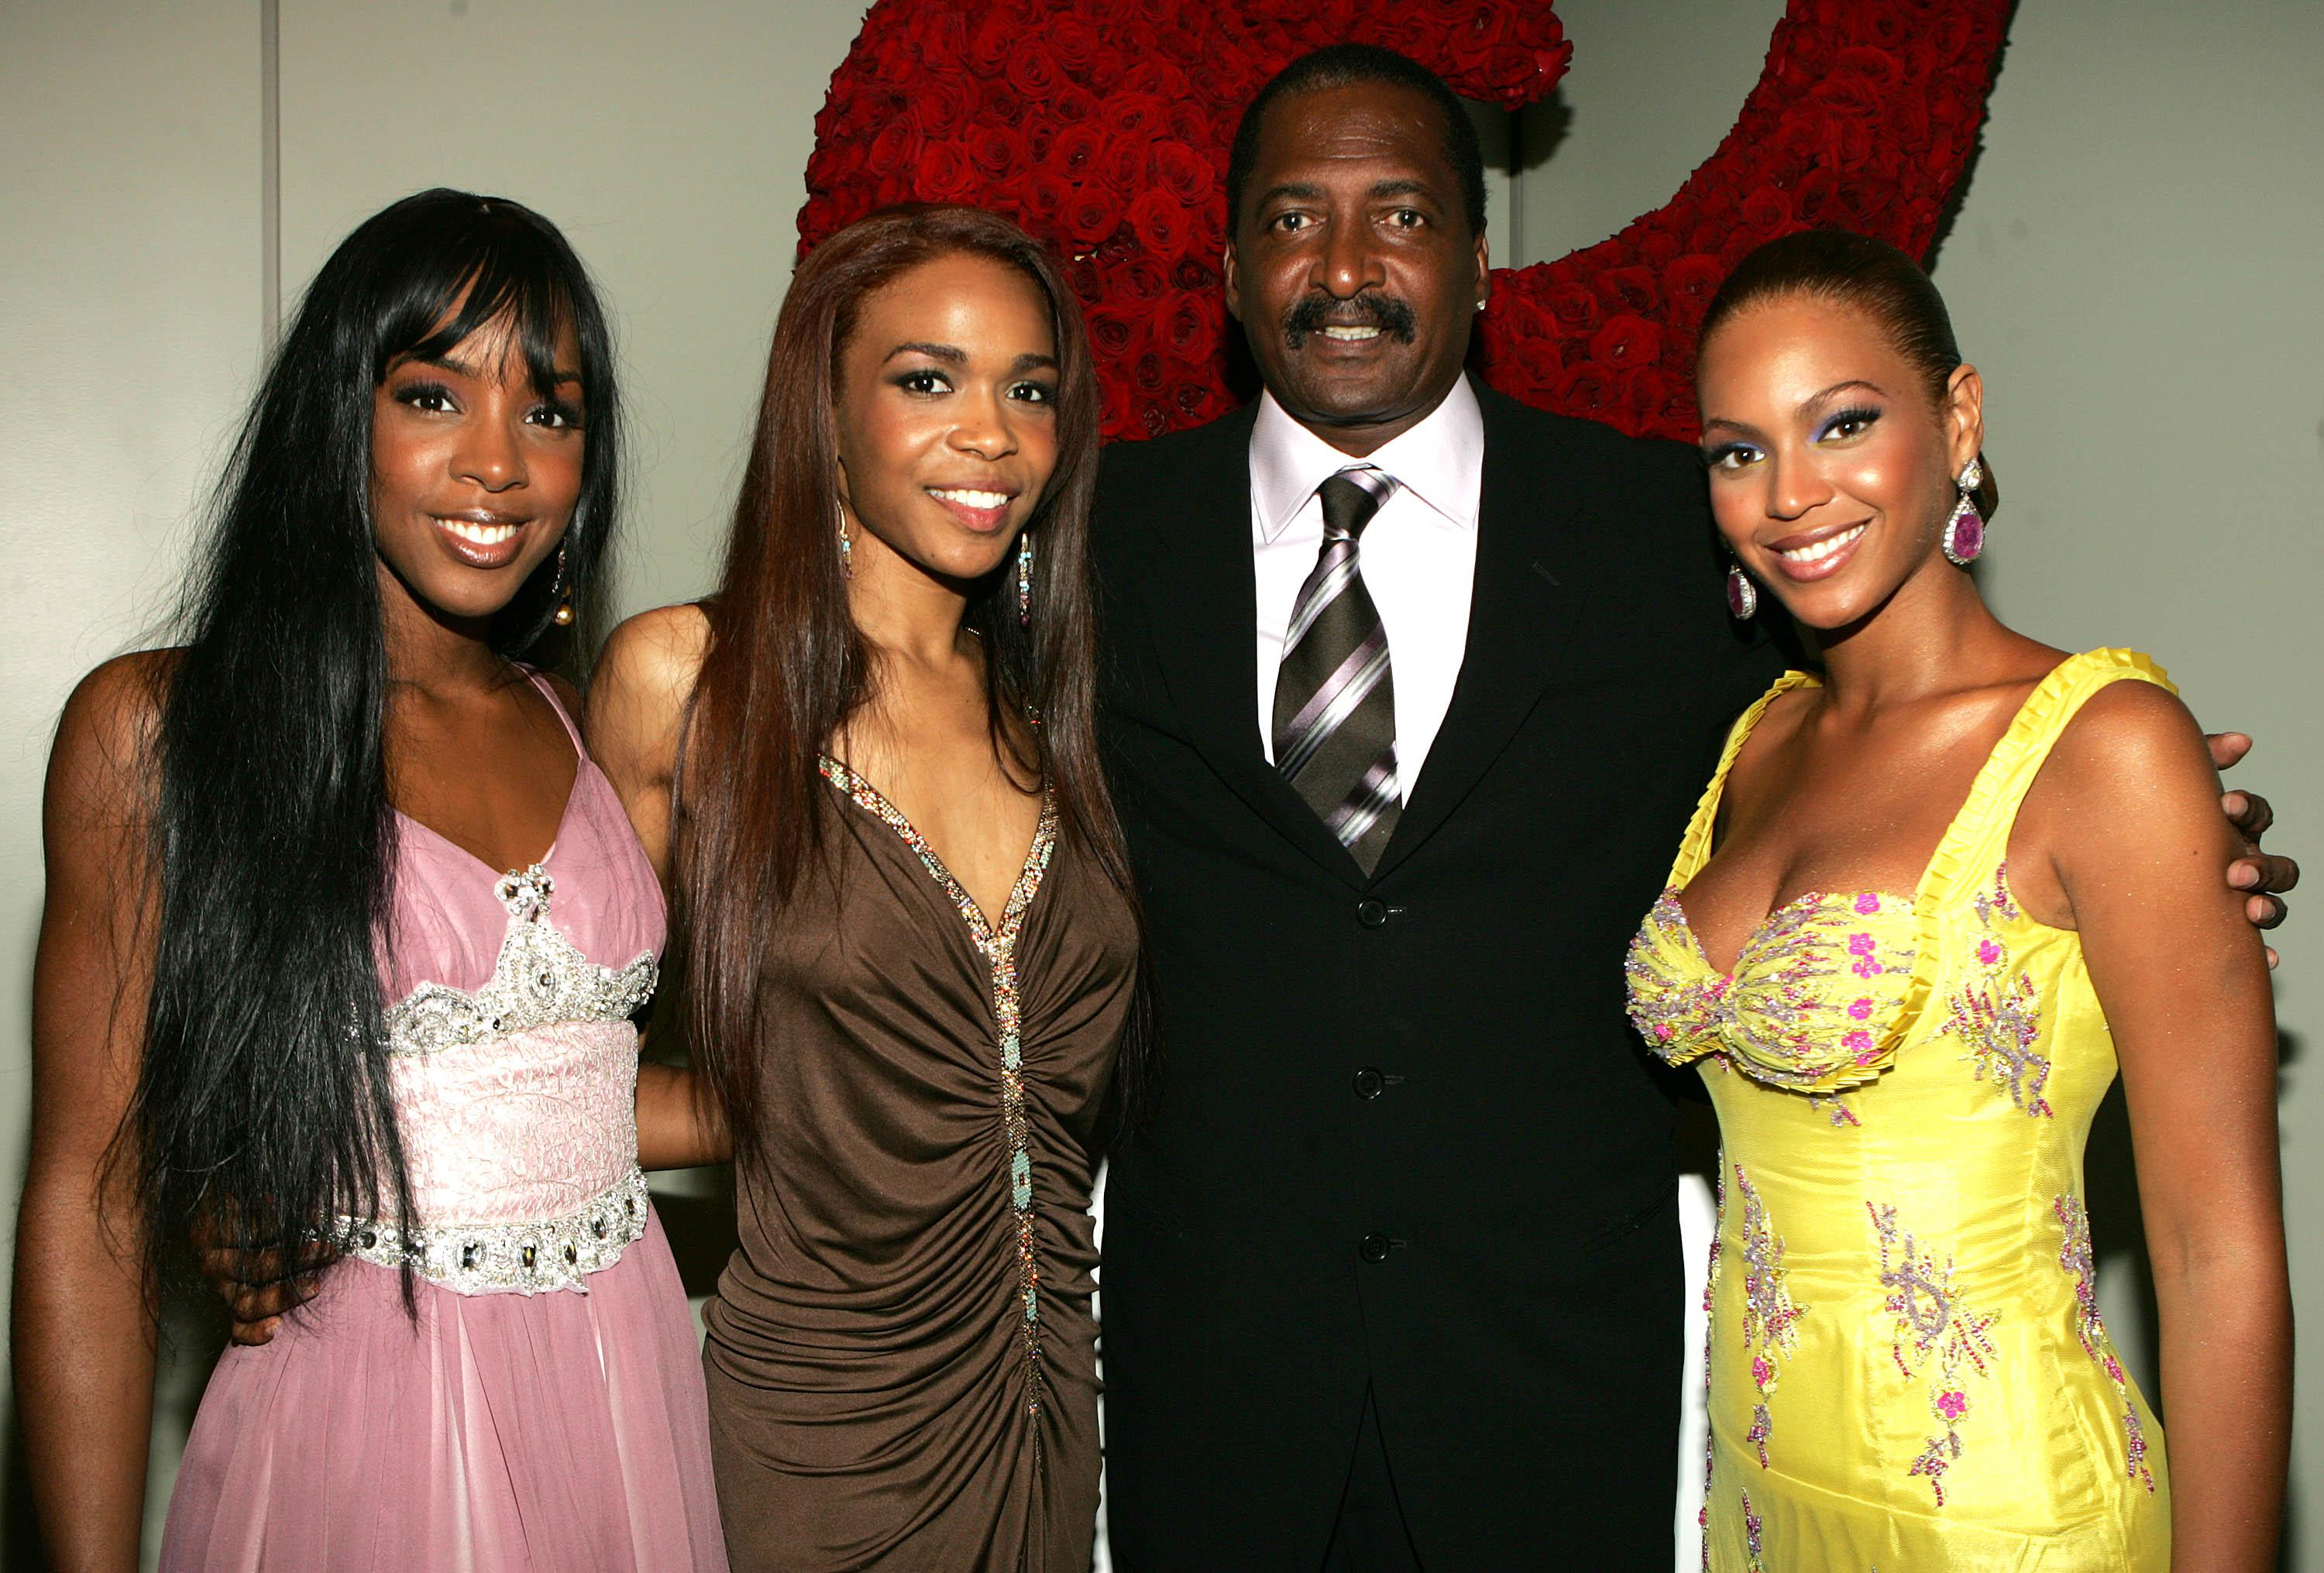 Beyoncé, Kelly Rowland, Michelle Williams, and Mathew Knowles.